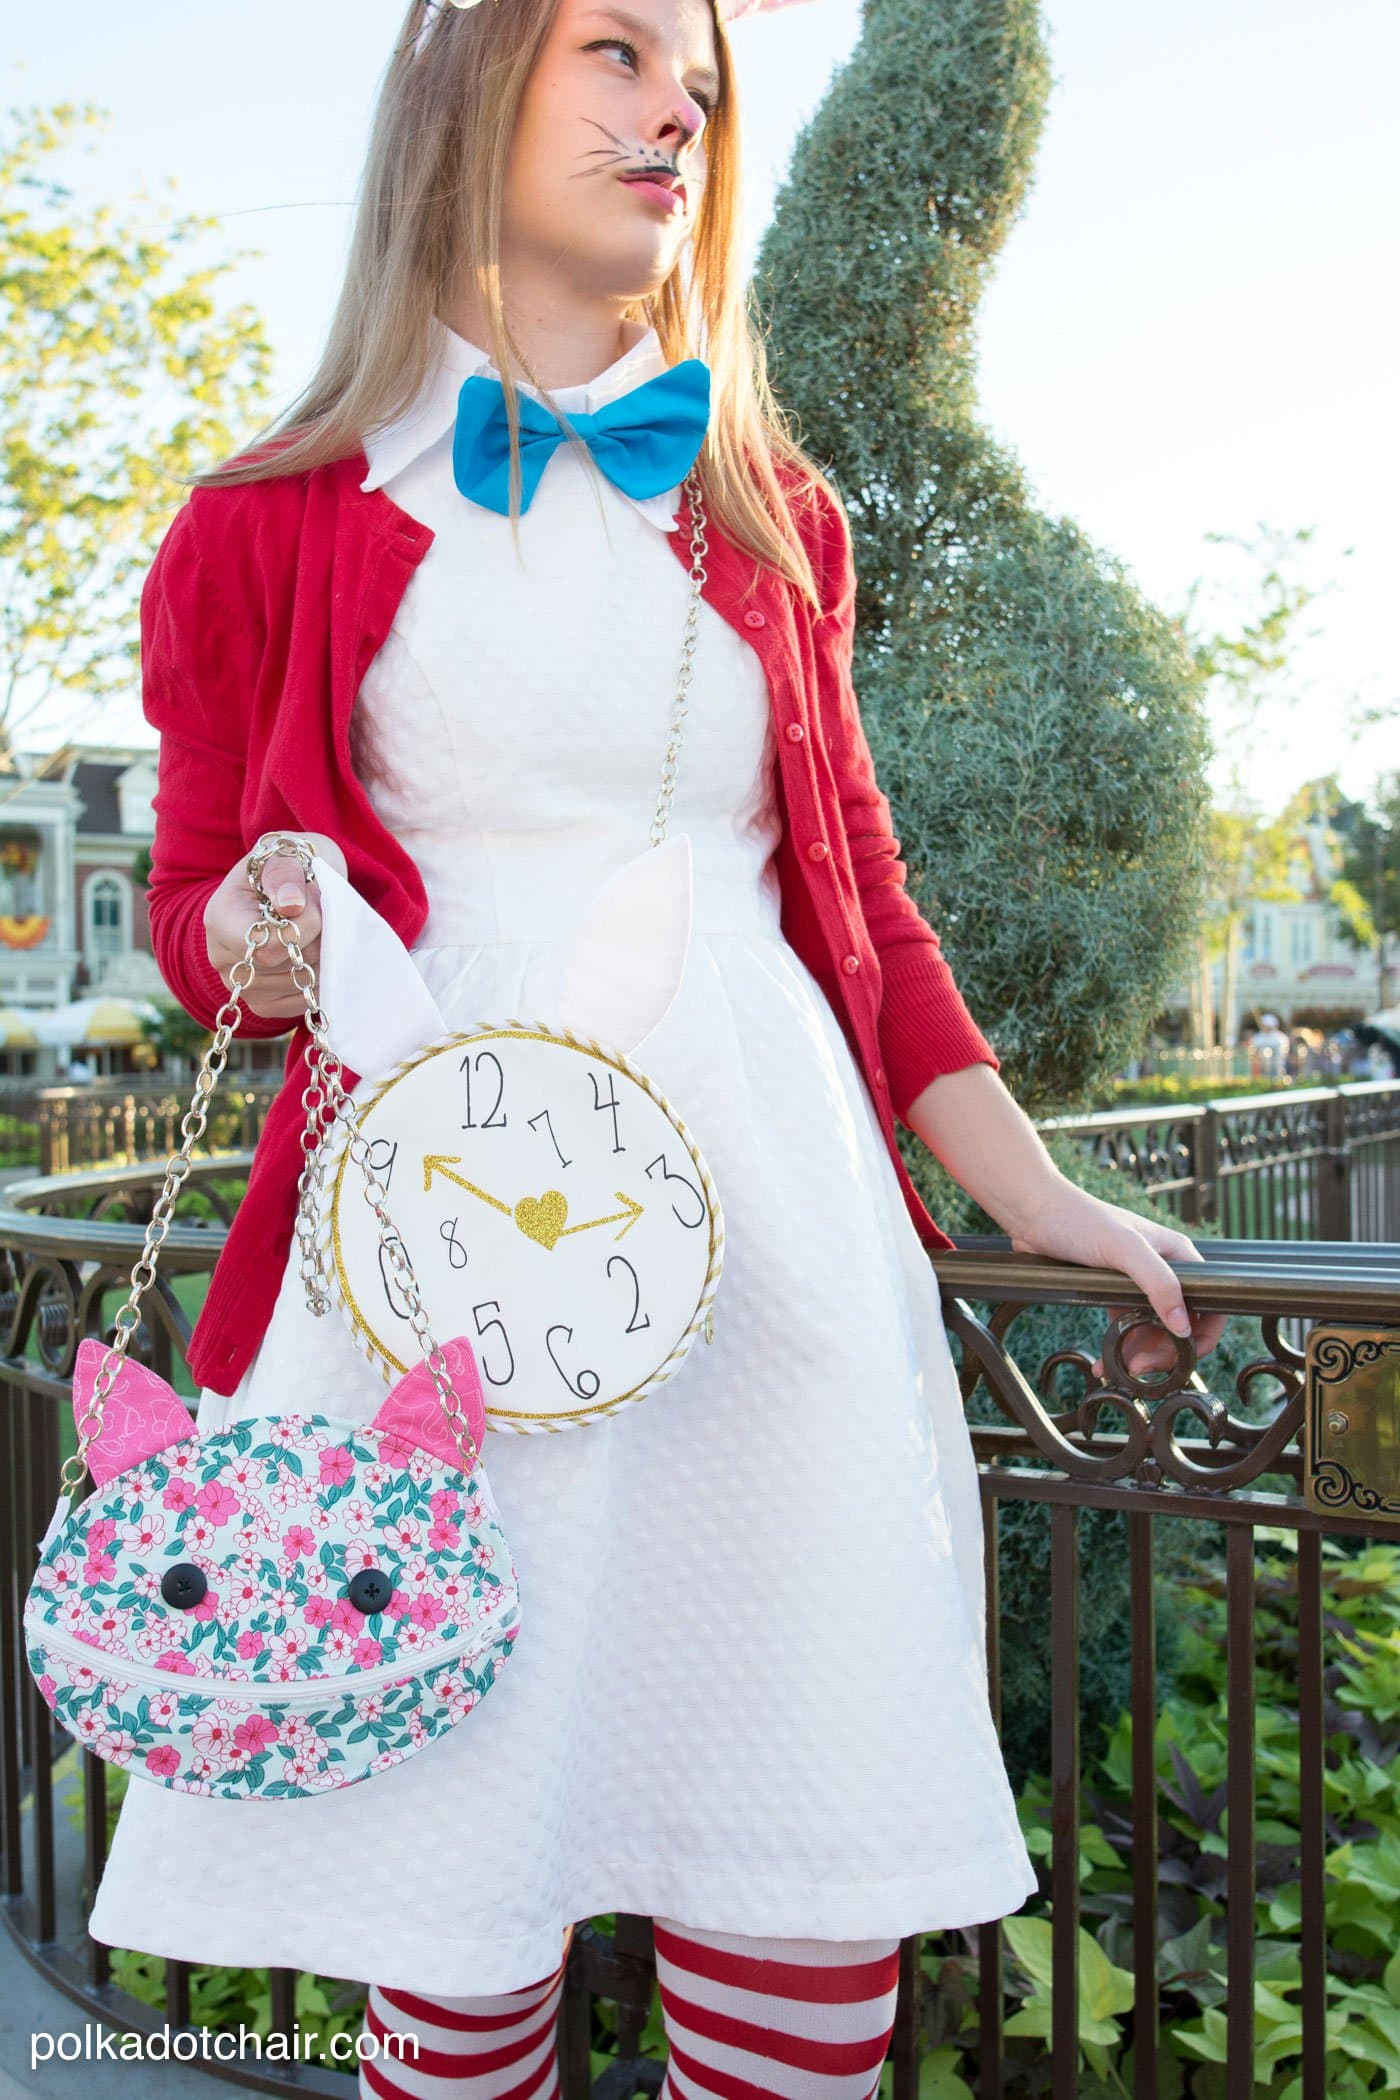 Cute ideas for No Sew Alice in Wonderland costumes, a cute last minute group costume idea